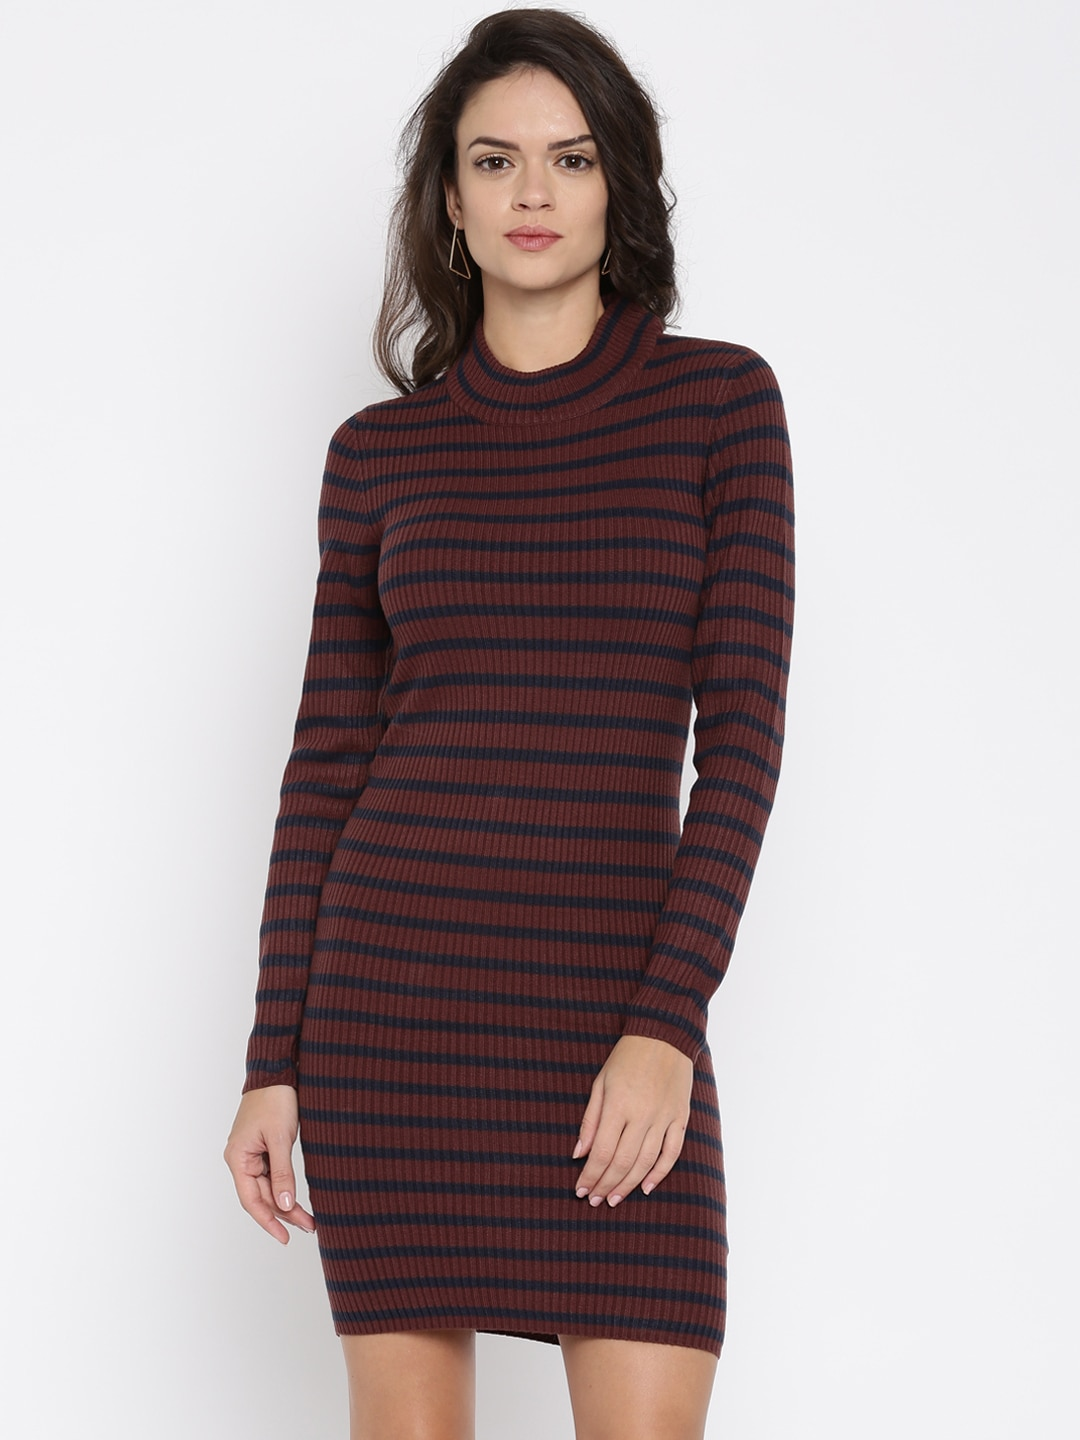 8aedd07bd3 Dresses For Women - Buy Women Dresses Online - Myntra